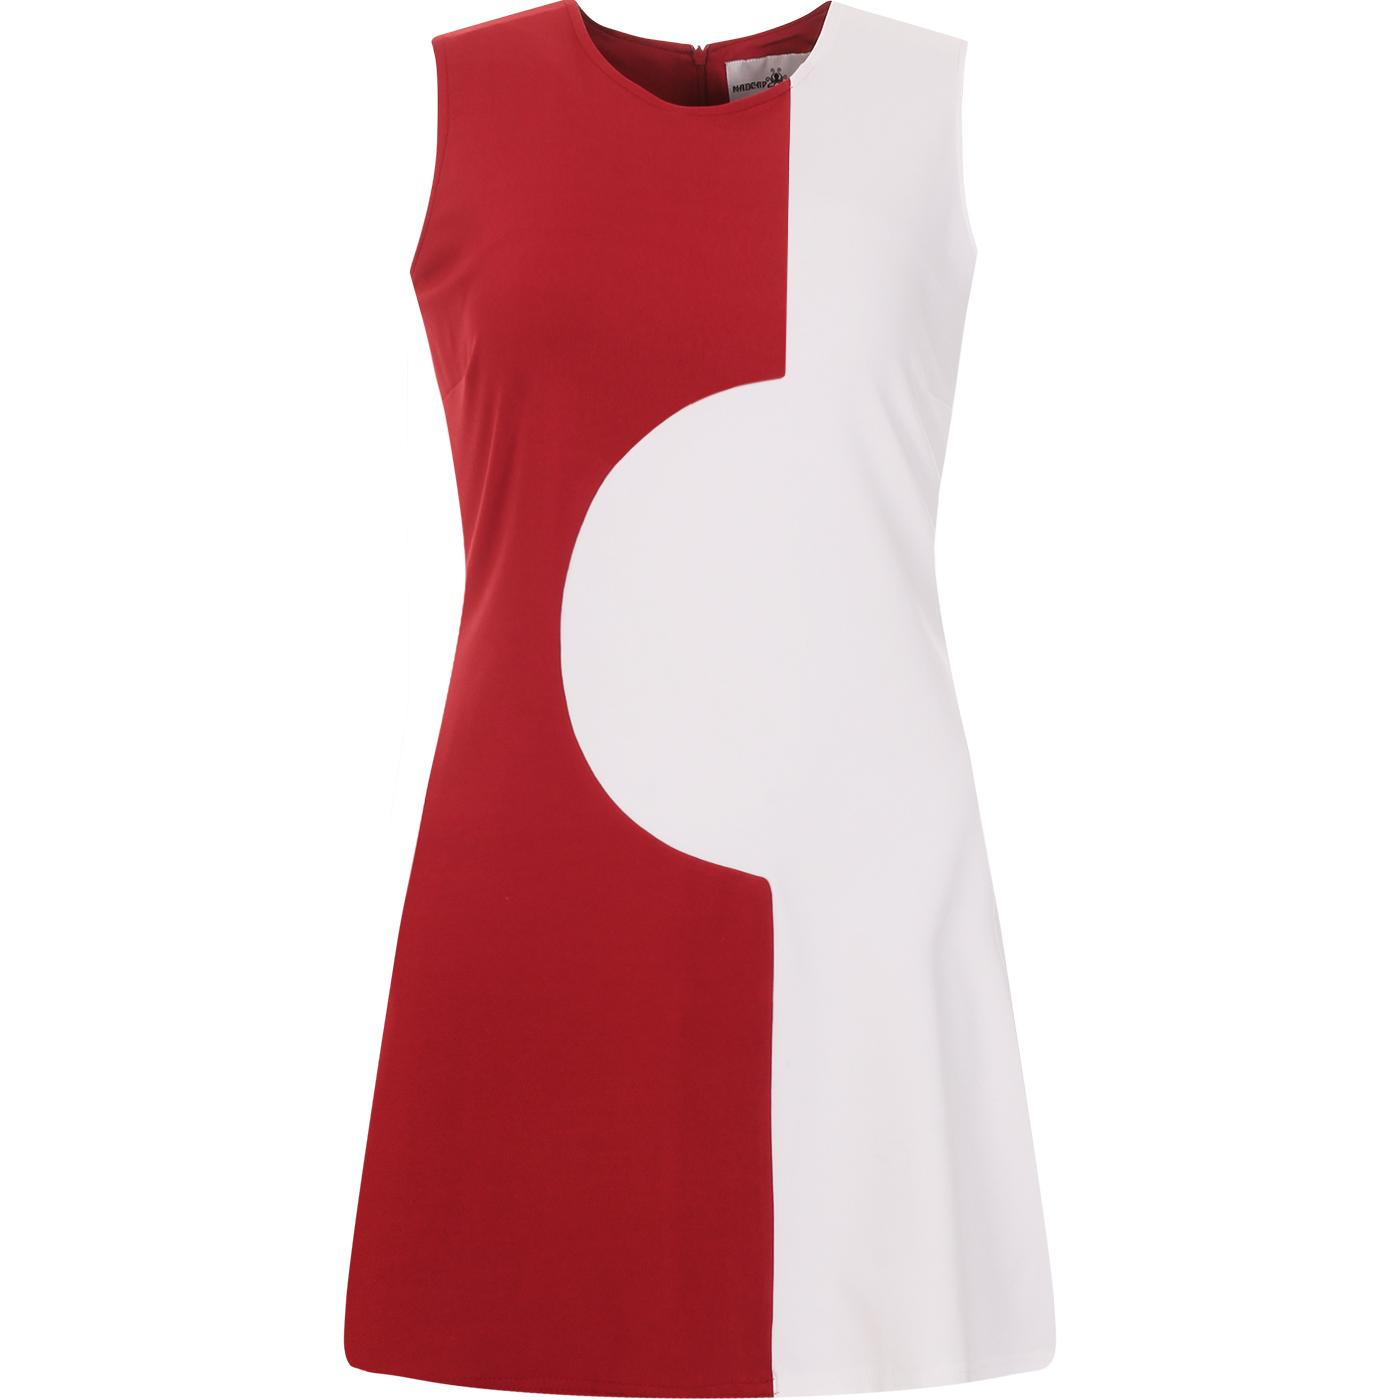 Golightly MADCAP ENGLAND 60s Mod 2-Tone Dress Red